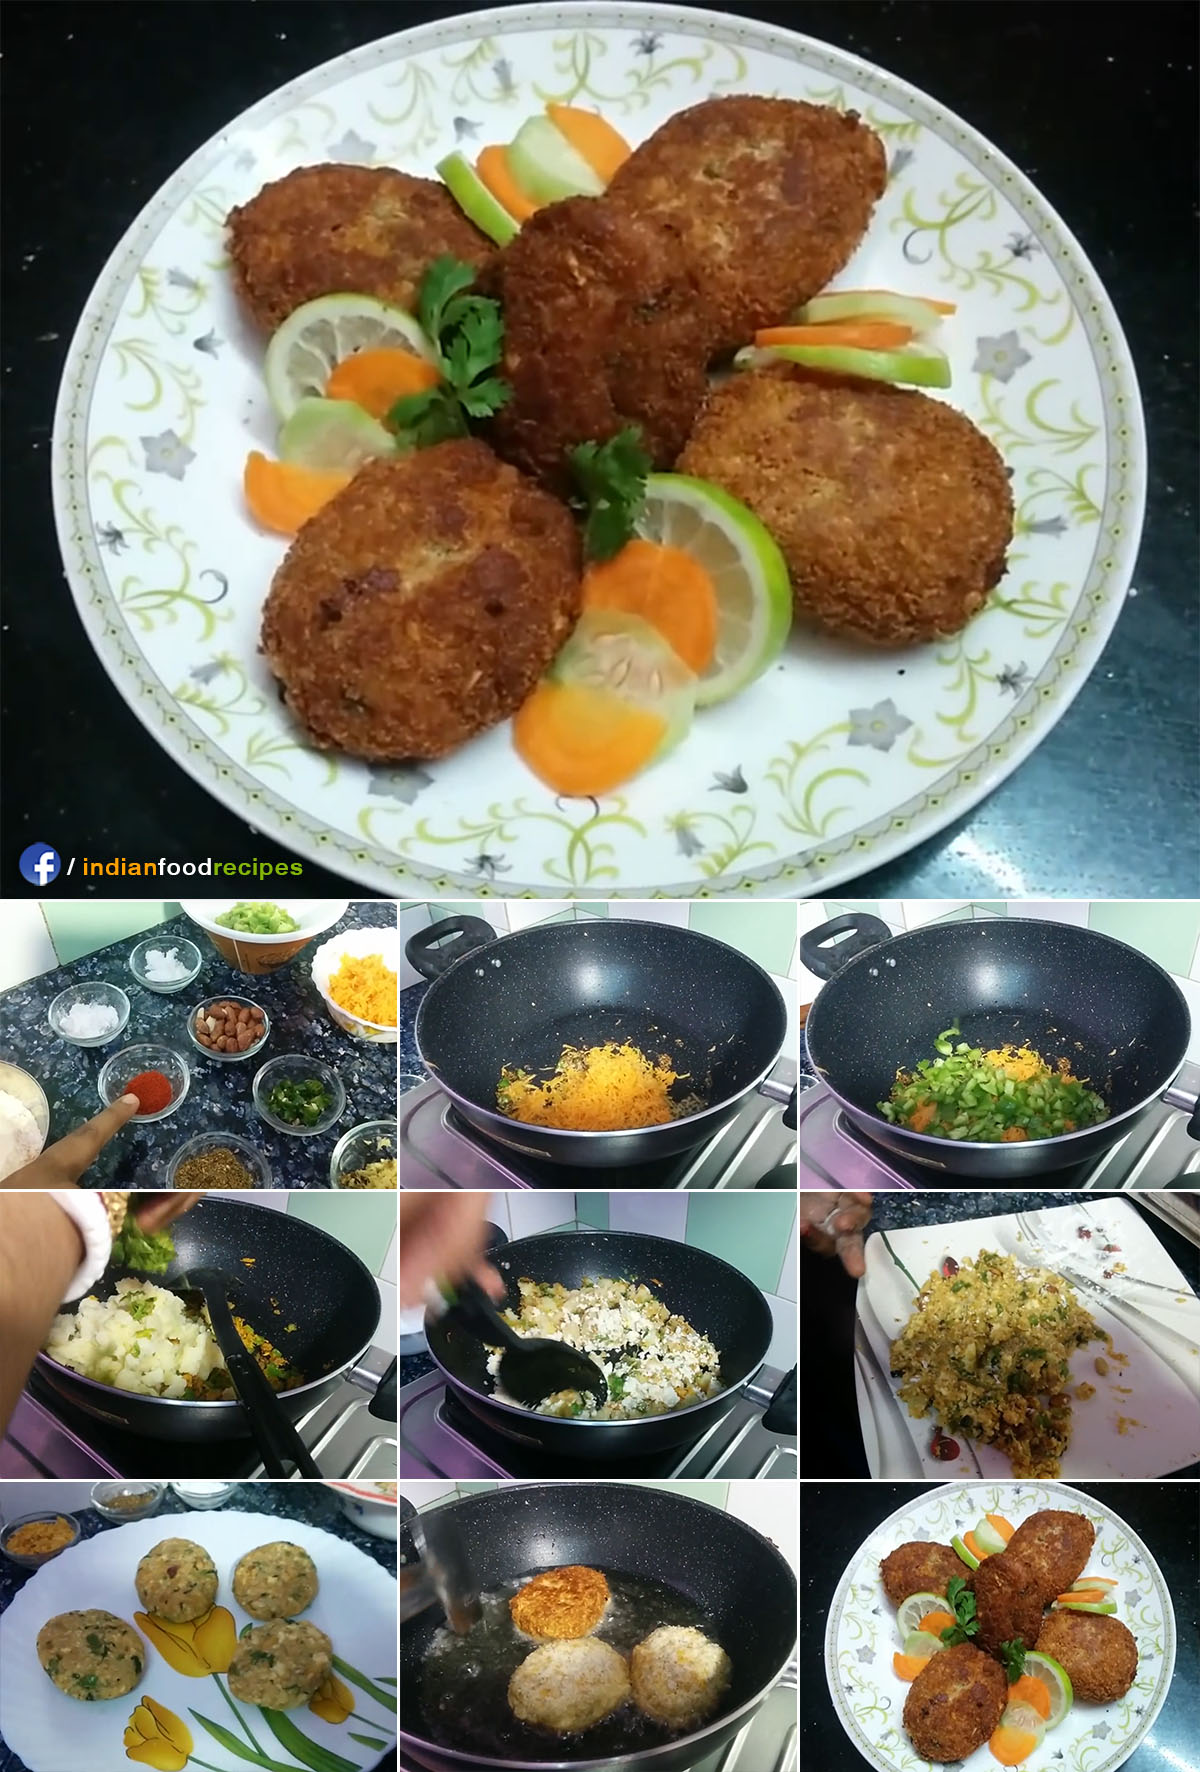 Crispy Paneer Vegetable Cutlet | Restaurant style Cottage Cheese Veg Cutlet recipe step by step pictures